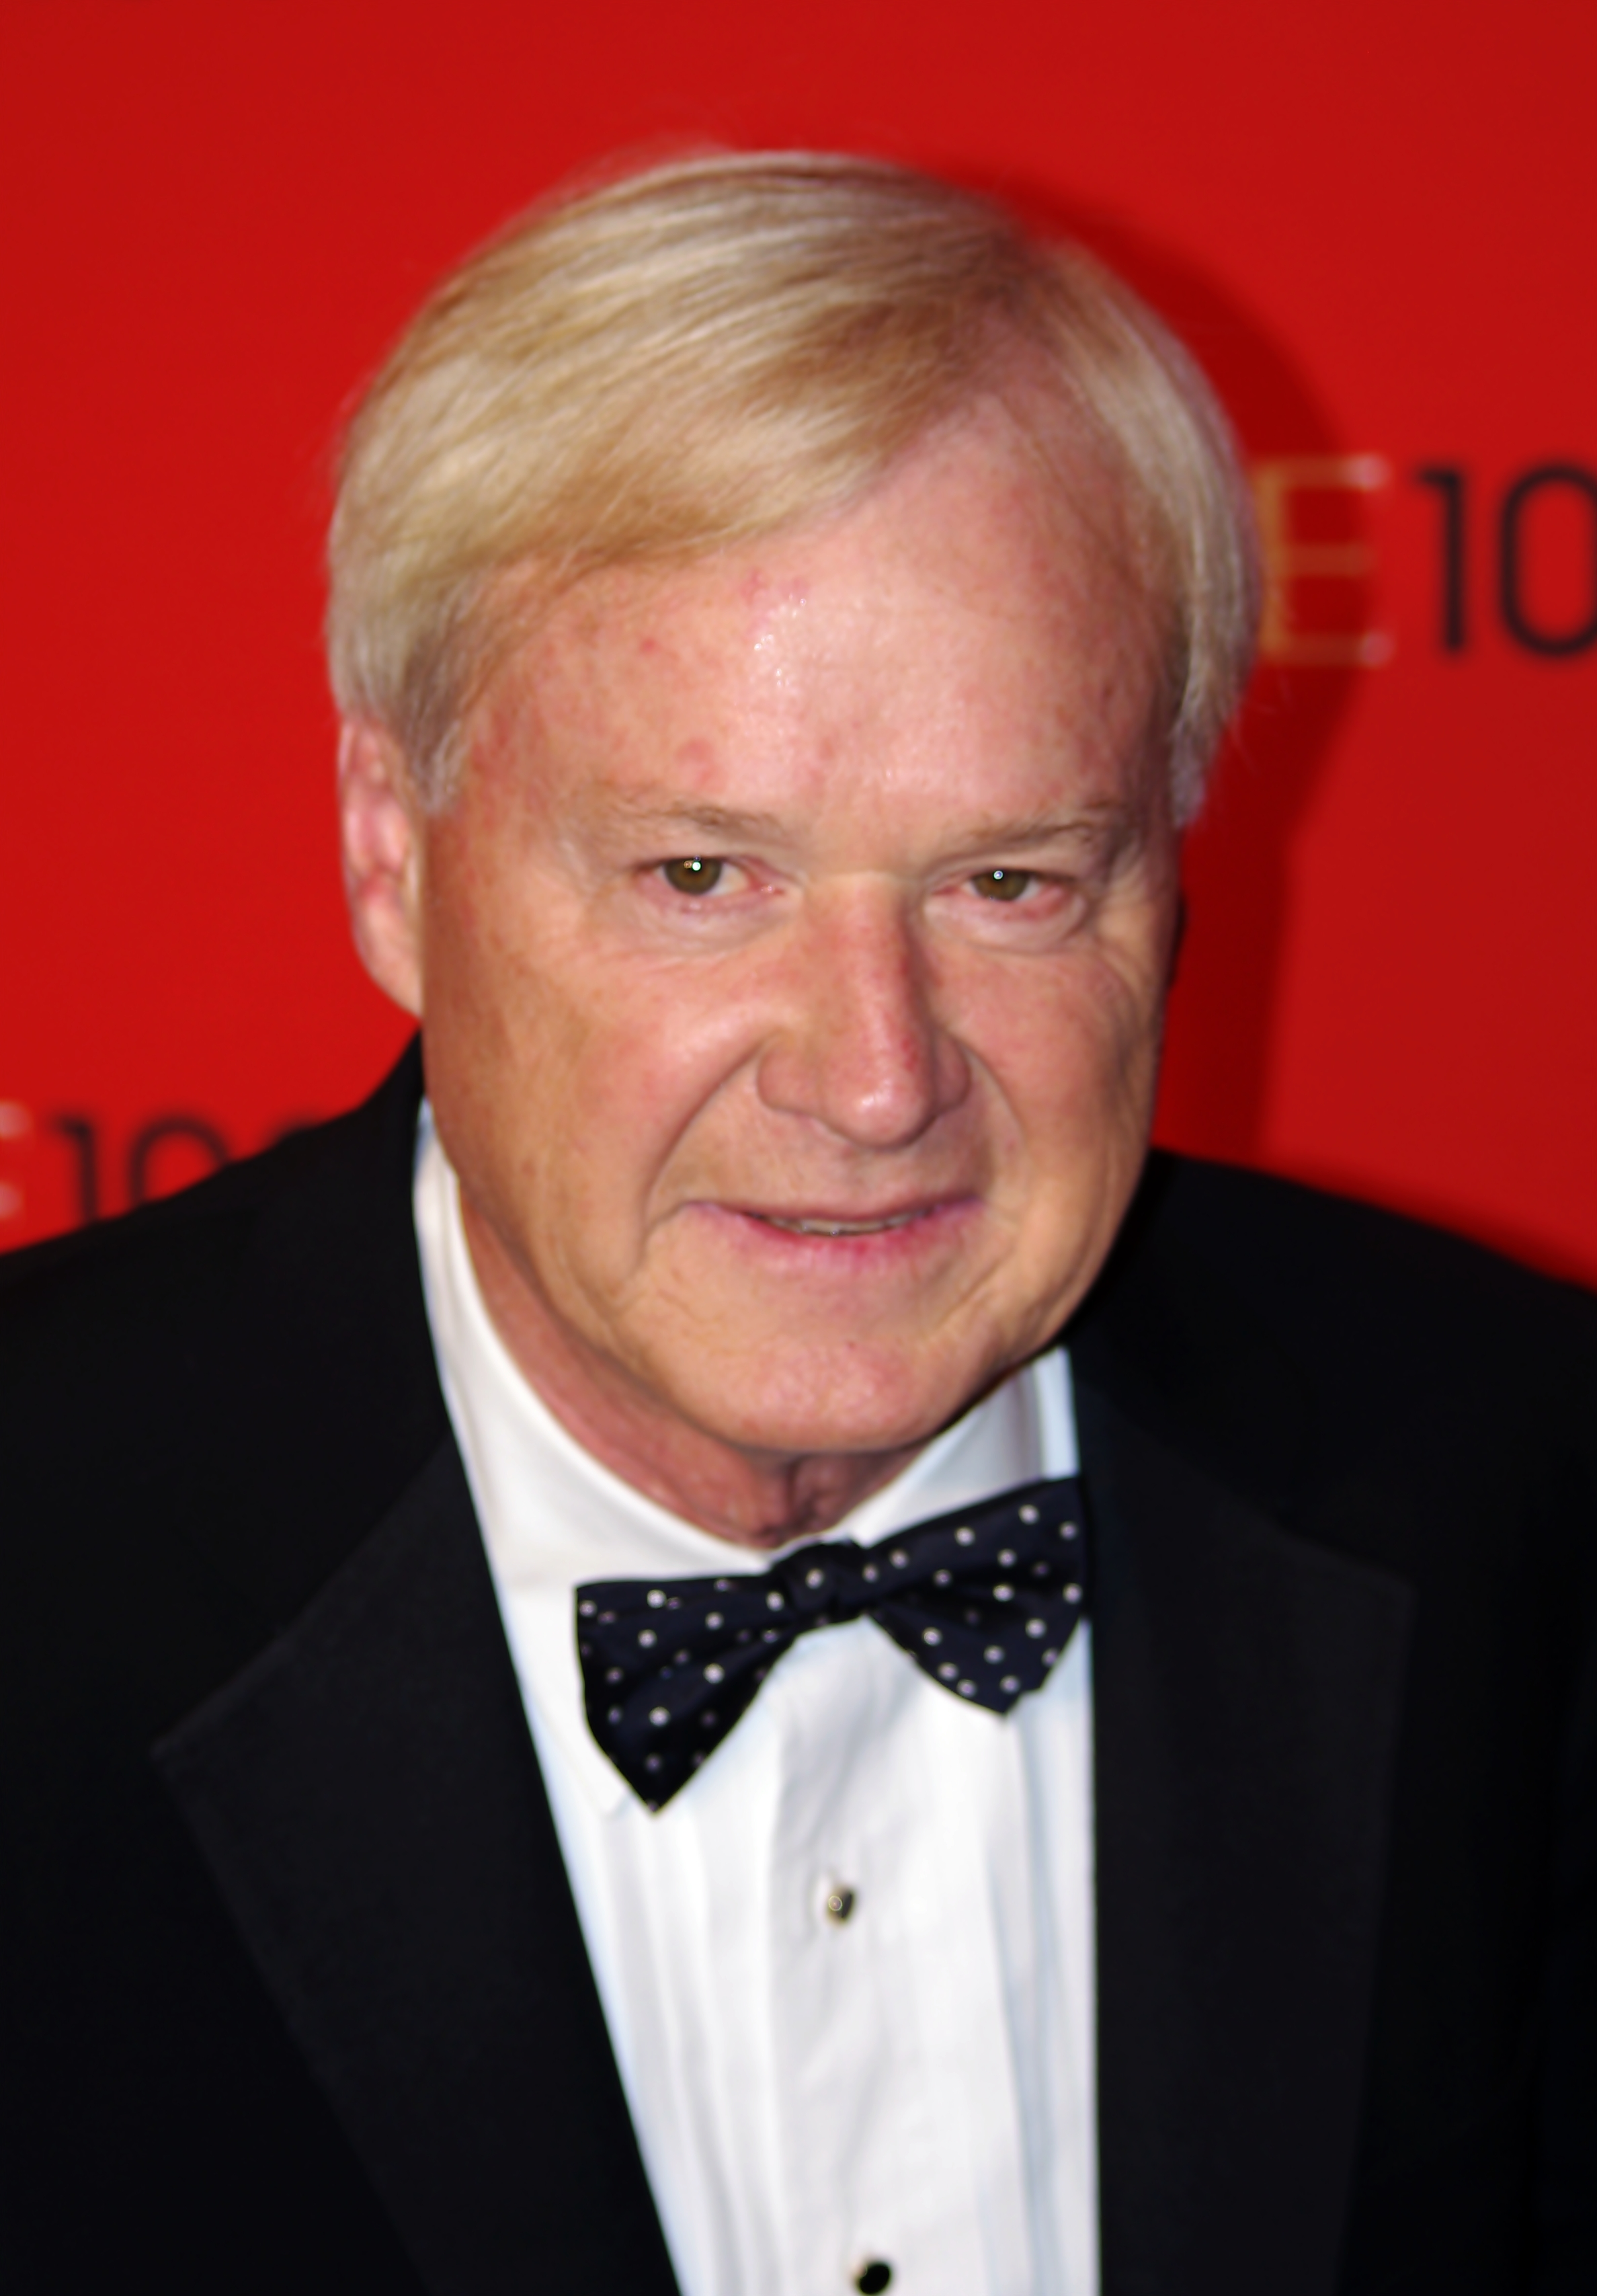 The 72-year old son of father Herb Matthews and mother Mary Teresa Matthews Chris Matthews in 2018 photo. Chris Matthews earned a  million dollar salary - leaving the net worth at 16 million in 2018